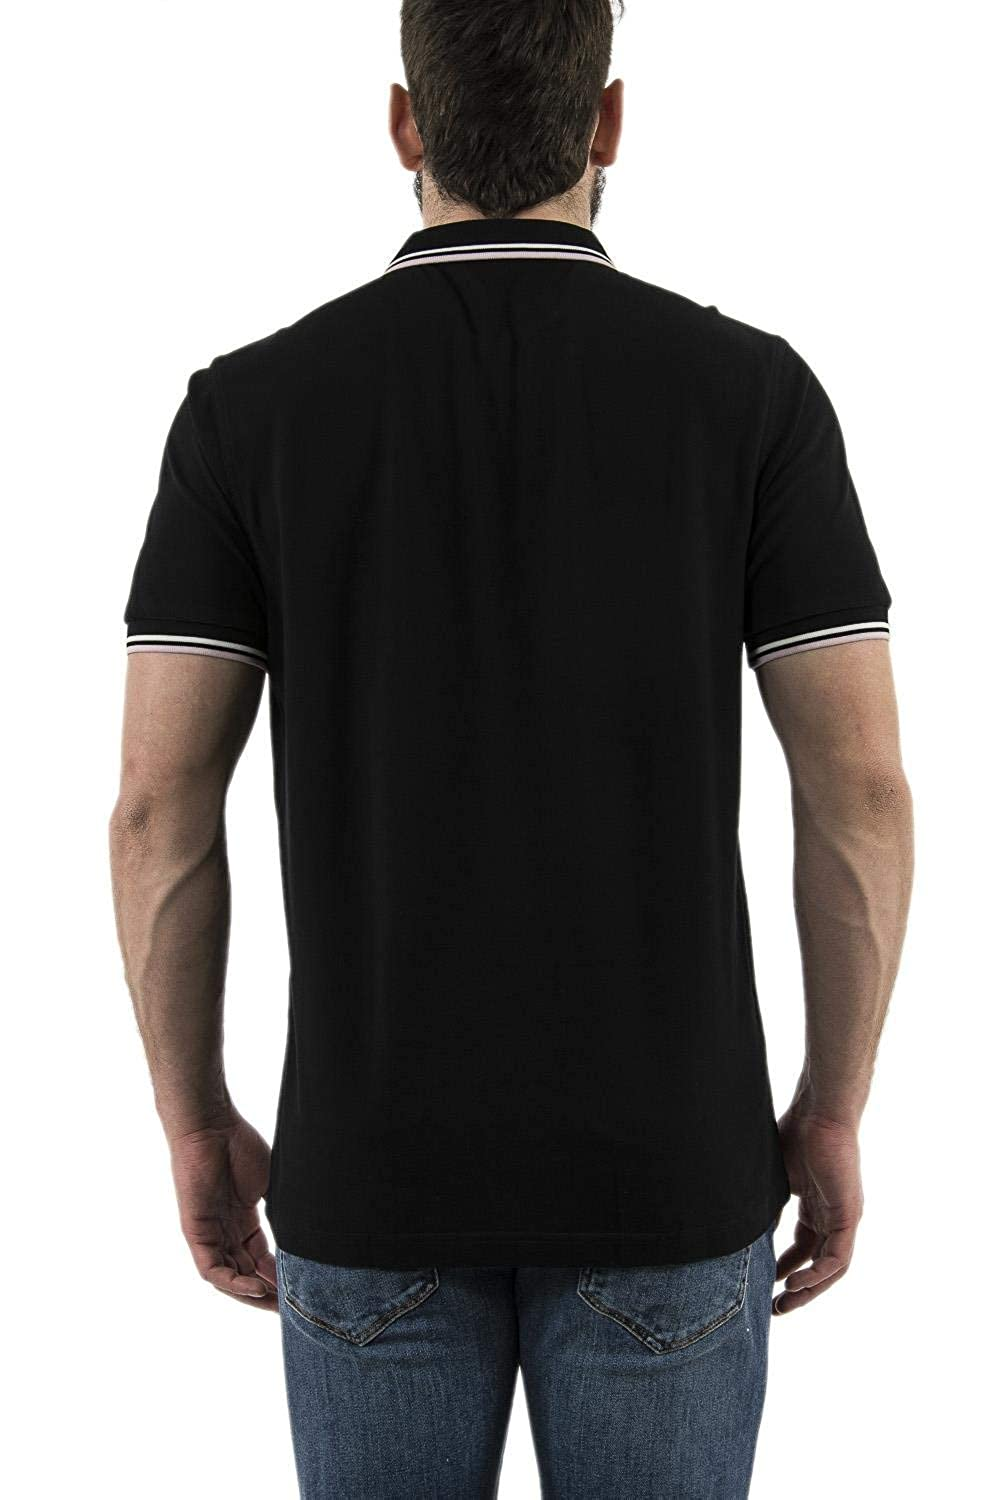 af0d8b7425 Amazon.com  Fred Perry Men s Twin Tipped Shirt  Fred Perry  Clothing